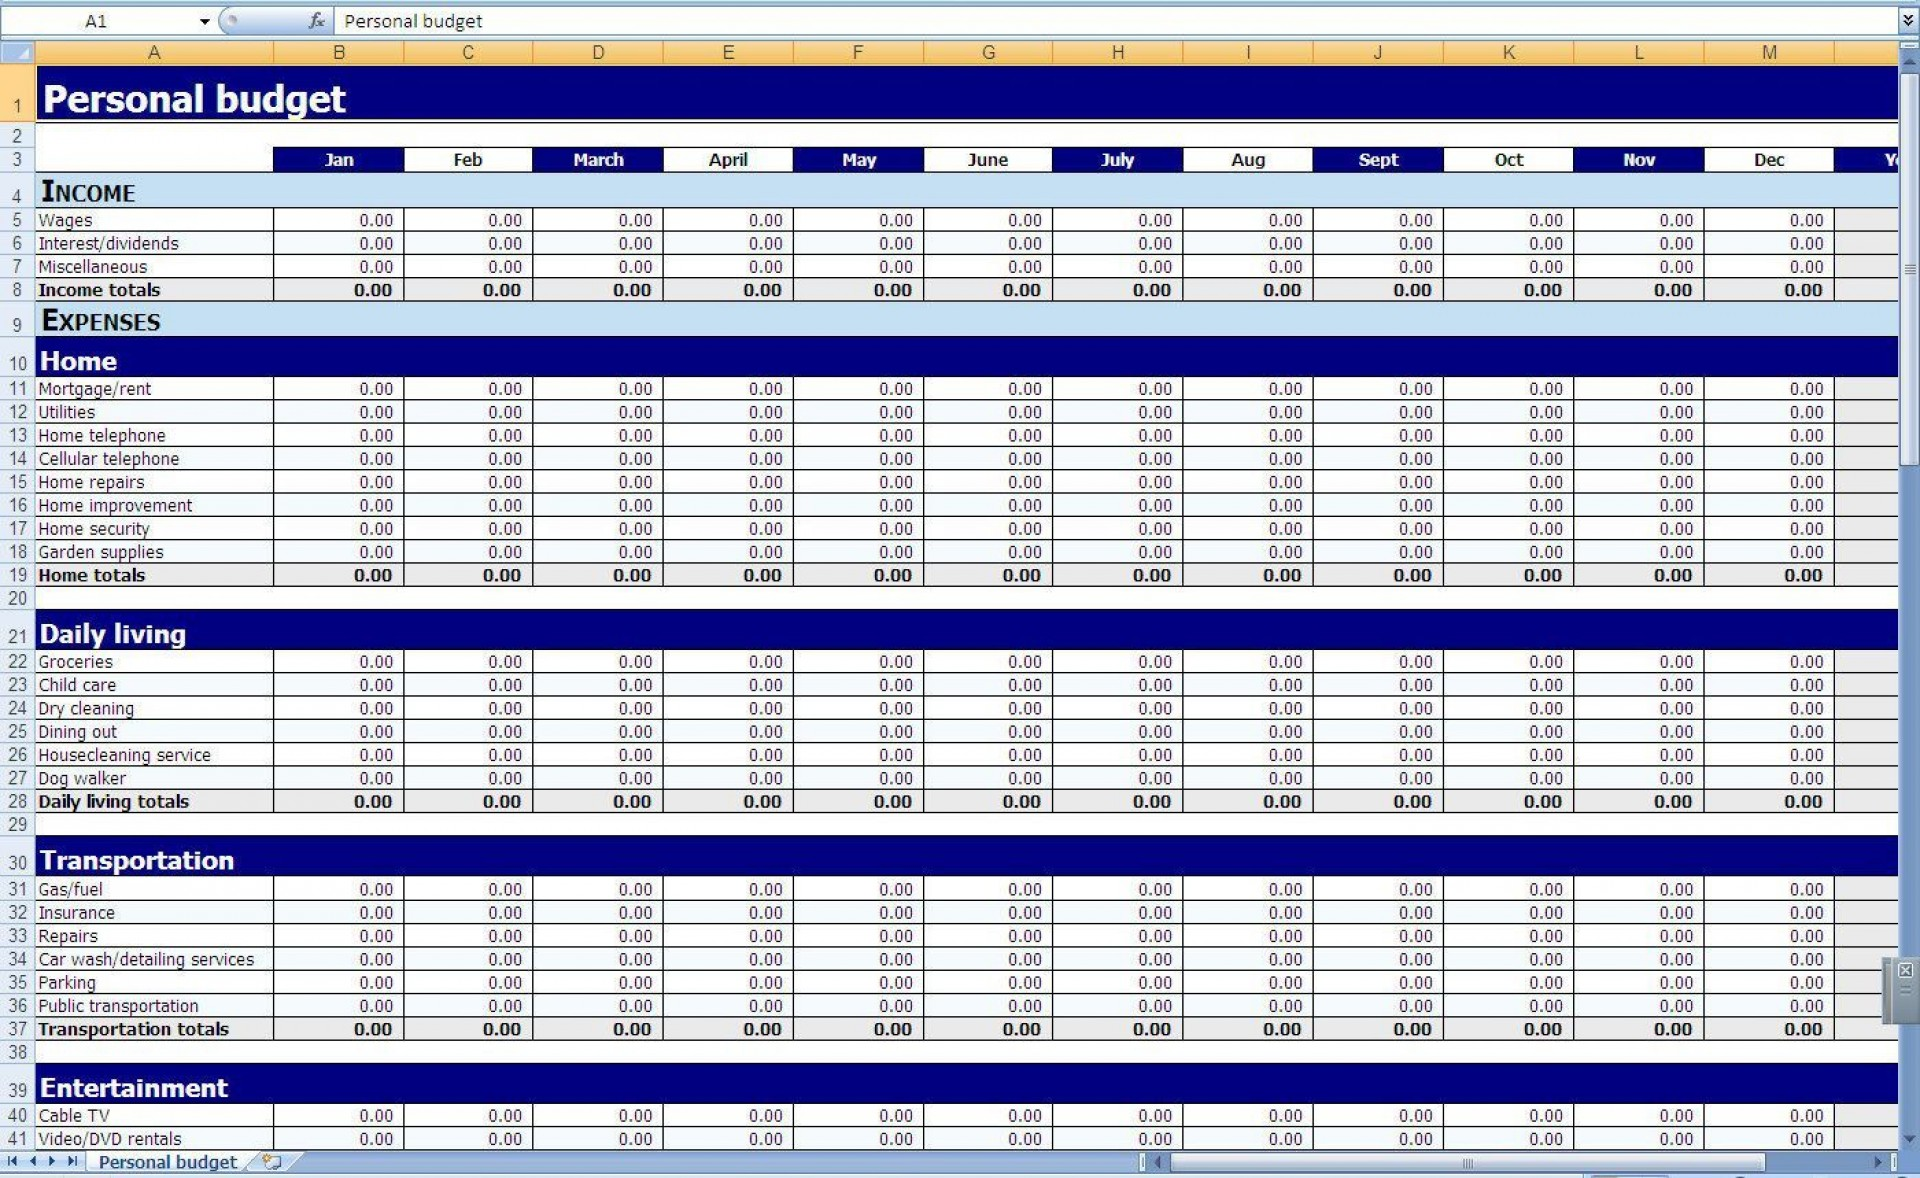 003 Staggering Personal Budget Template Excel Inspiration  Monthly Sheet Free 2007 South Africa1920